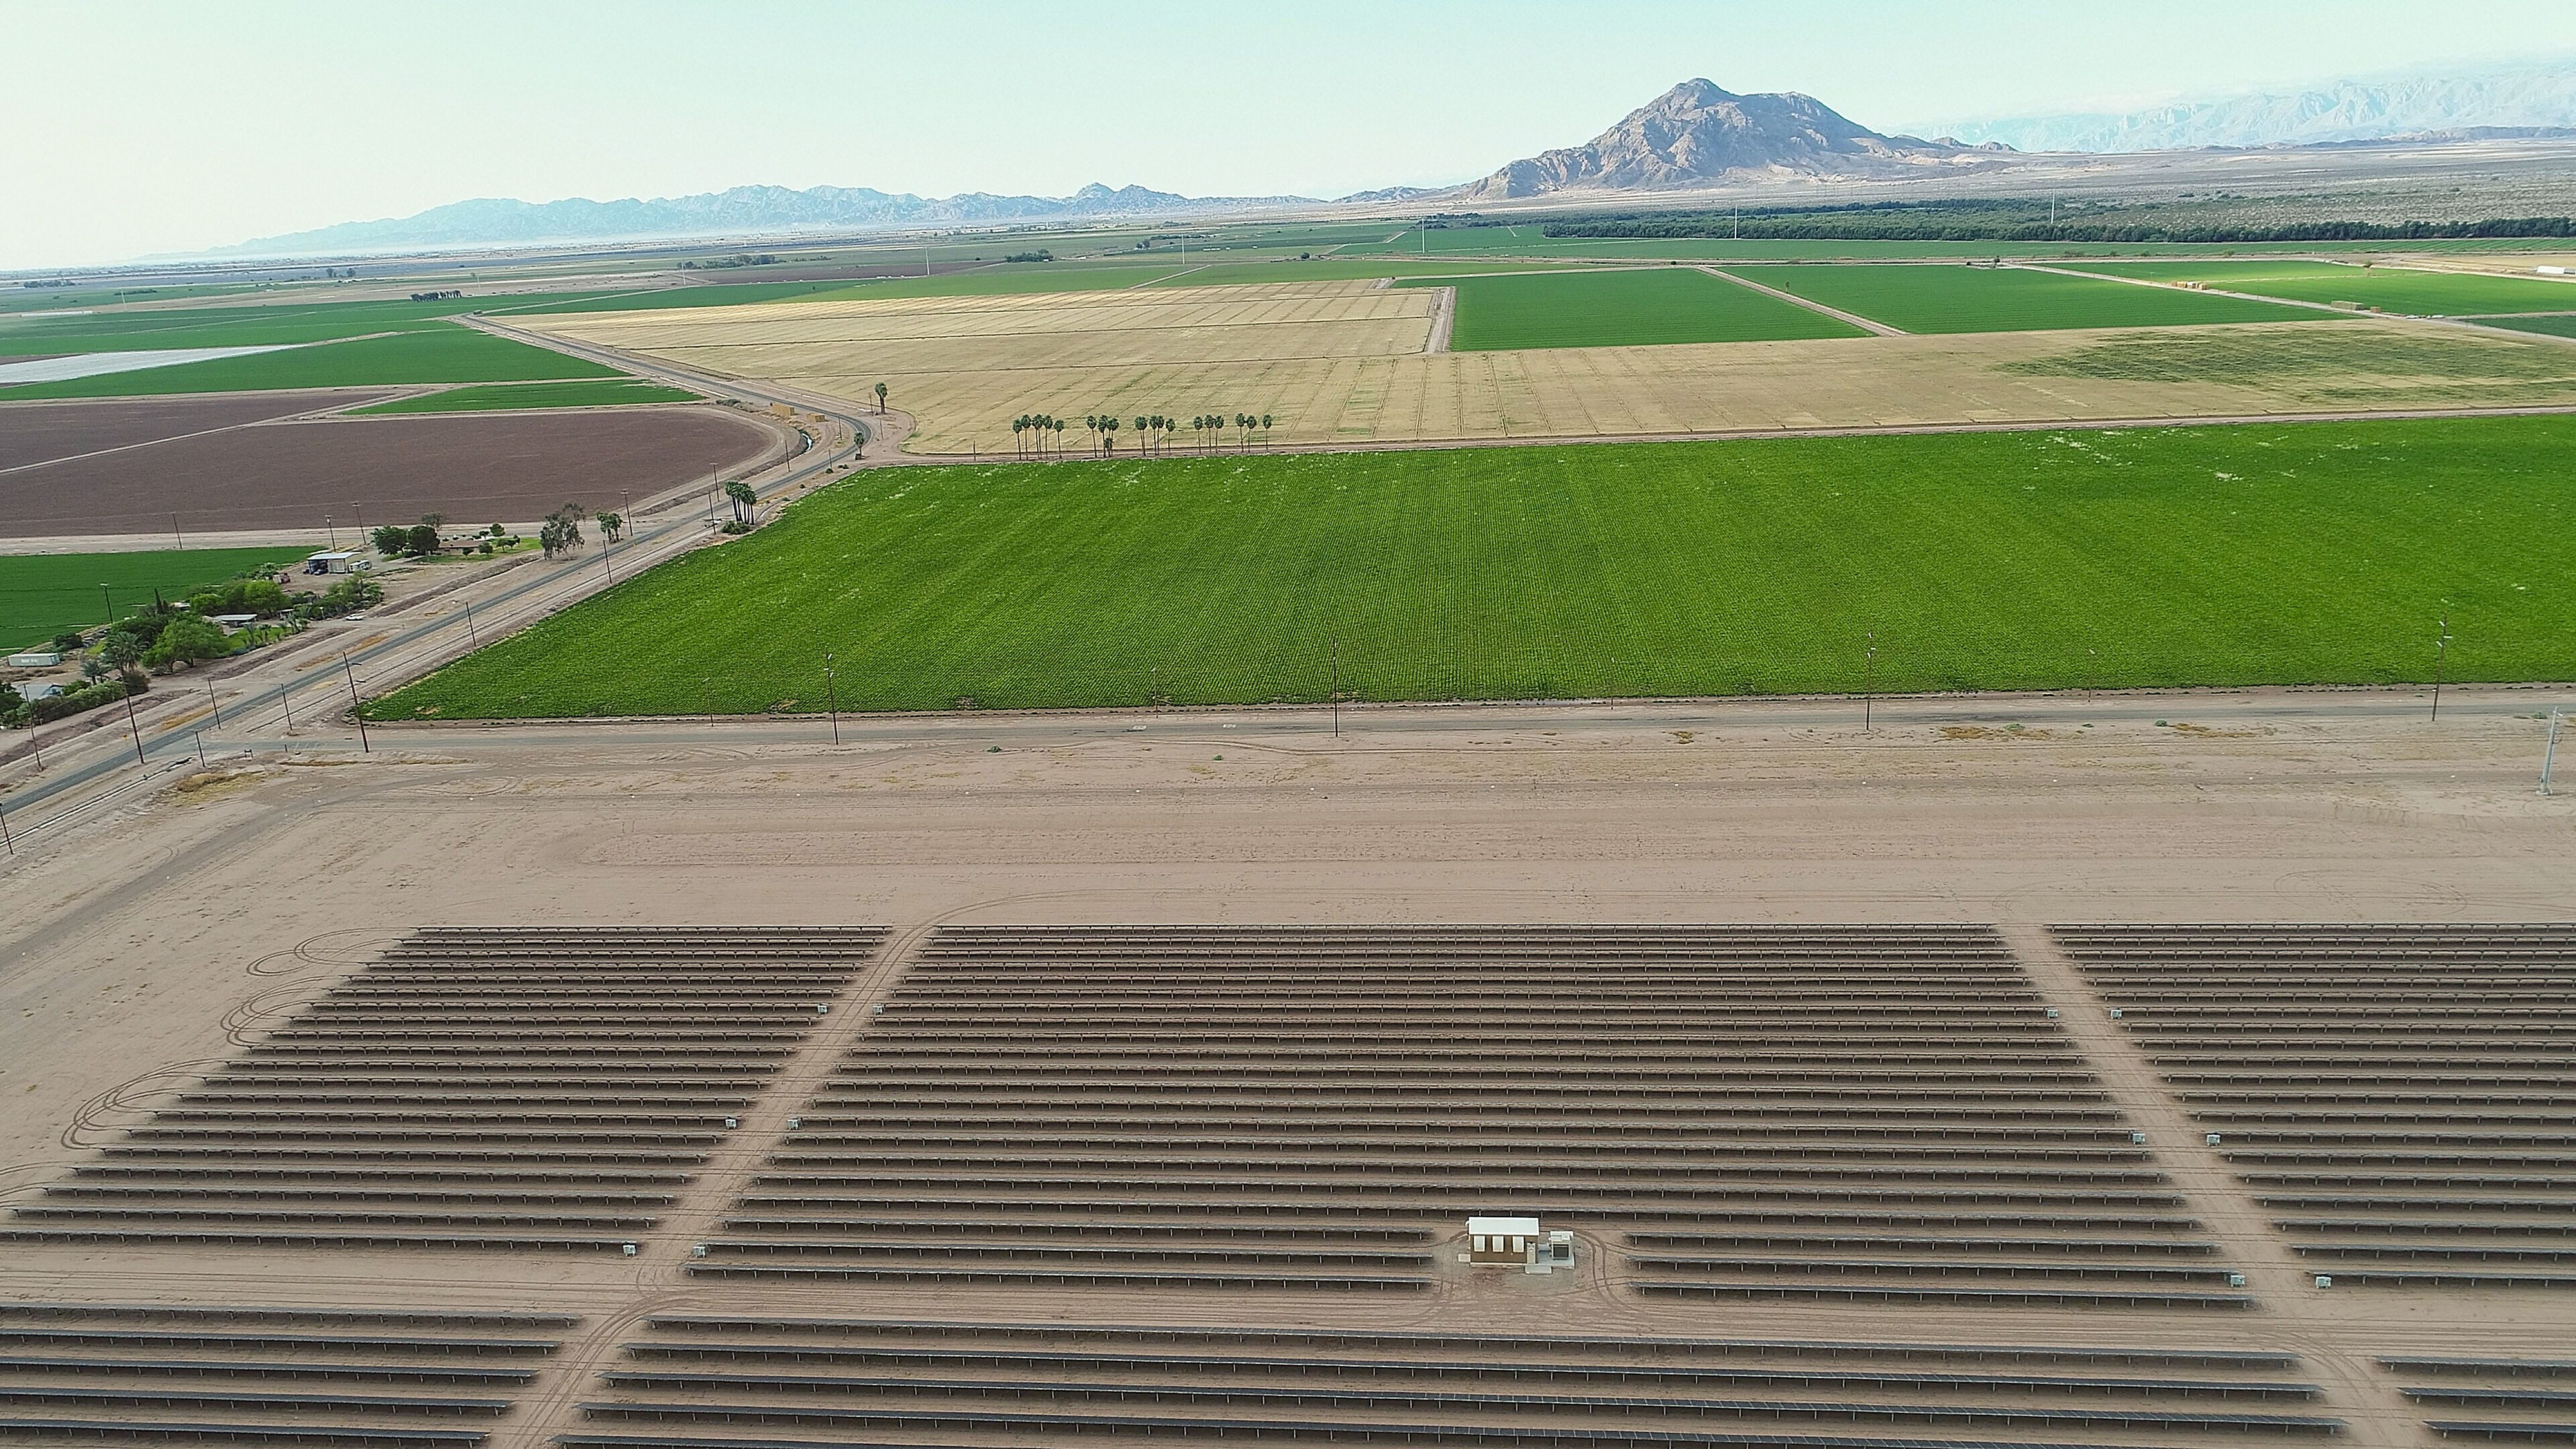 The Campo Verde solar project, seen from a drone, is adjacent to farmland owned by Mike Abatti. Mount Signal, in Mexico, looms in the background.